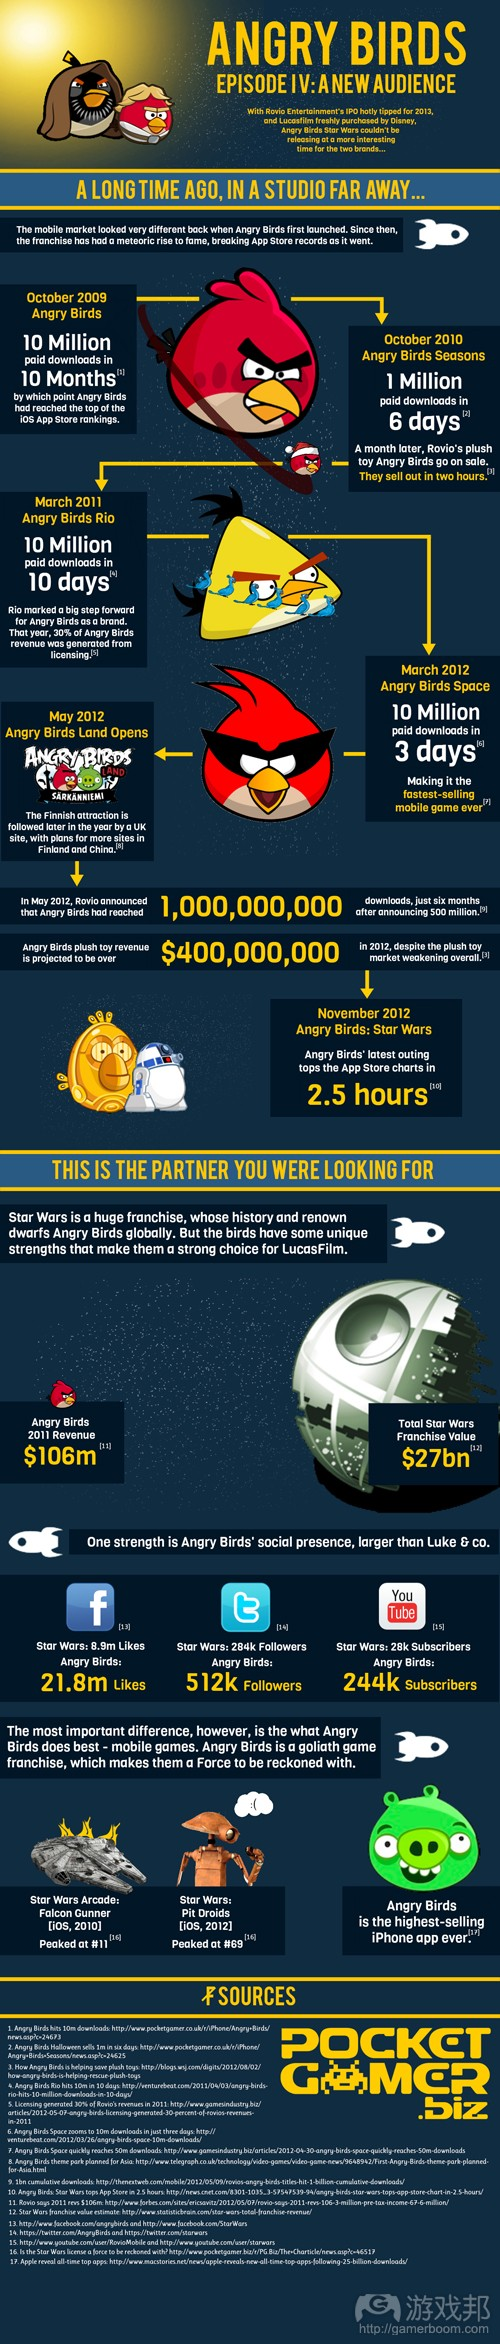 angrybirds infographic(from pocketgamer)